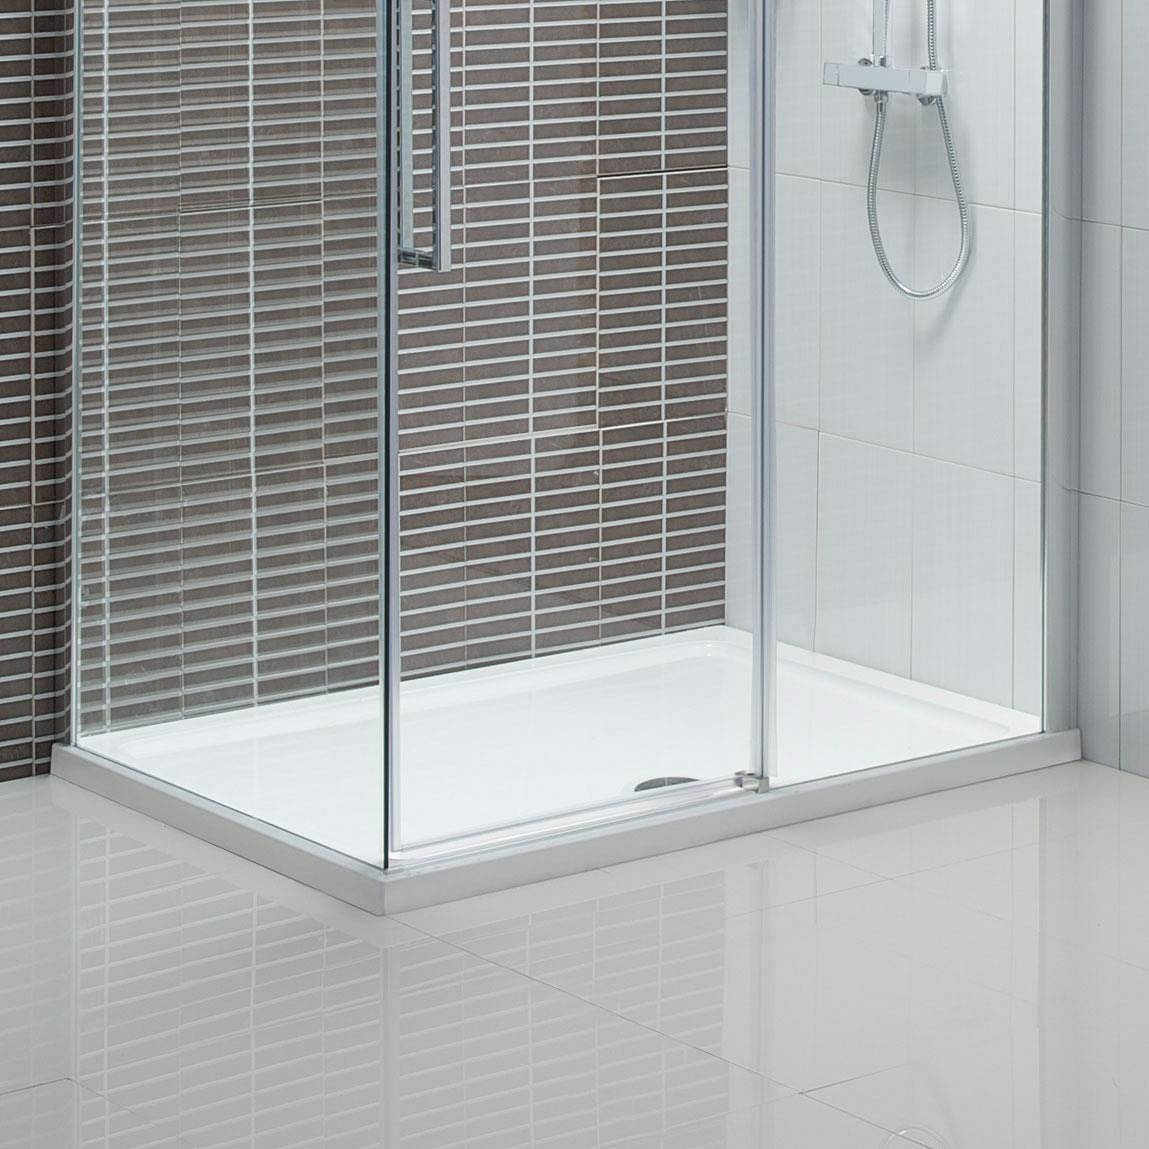 Shower Tray 700 x 800 Shower Tray 1400 x 800